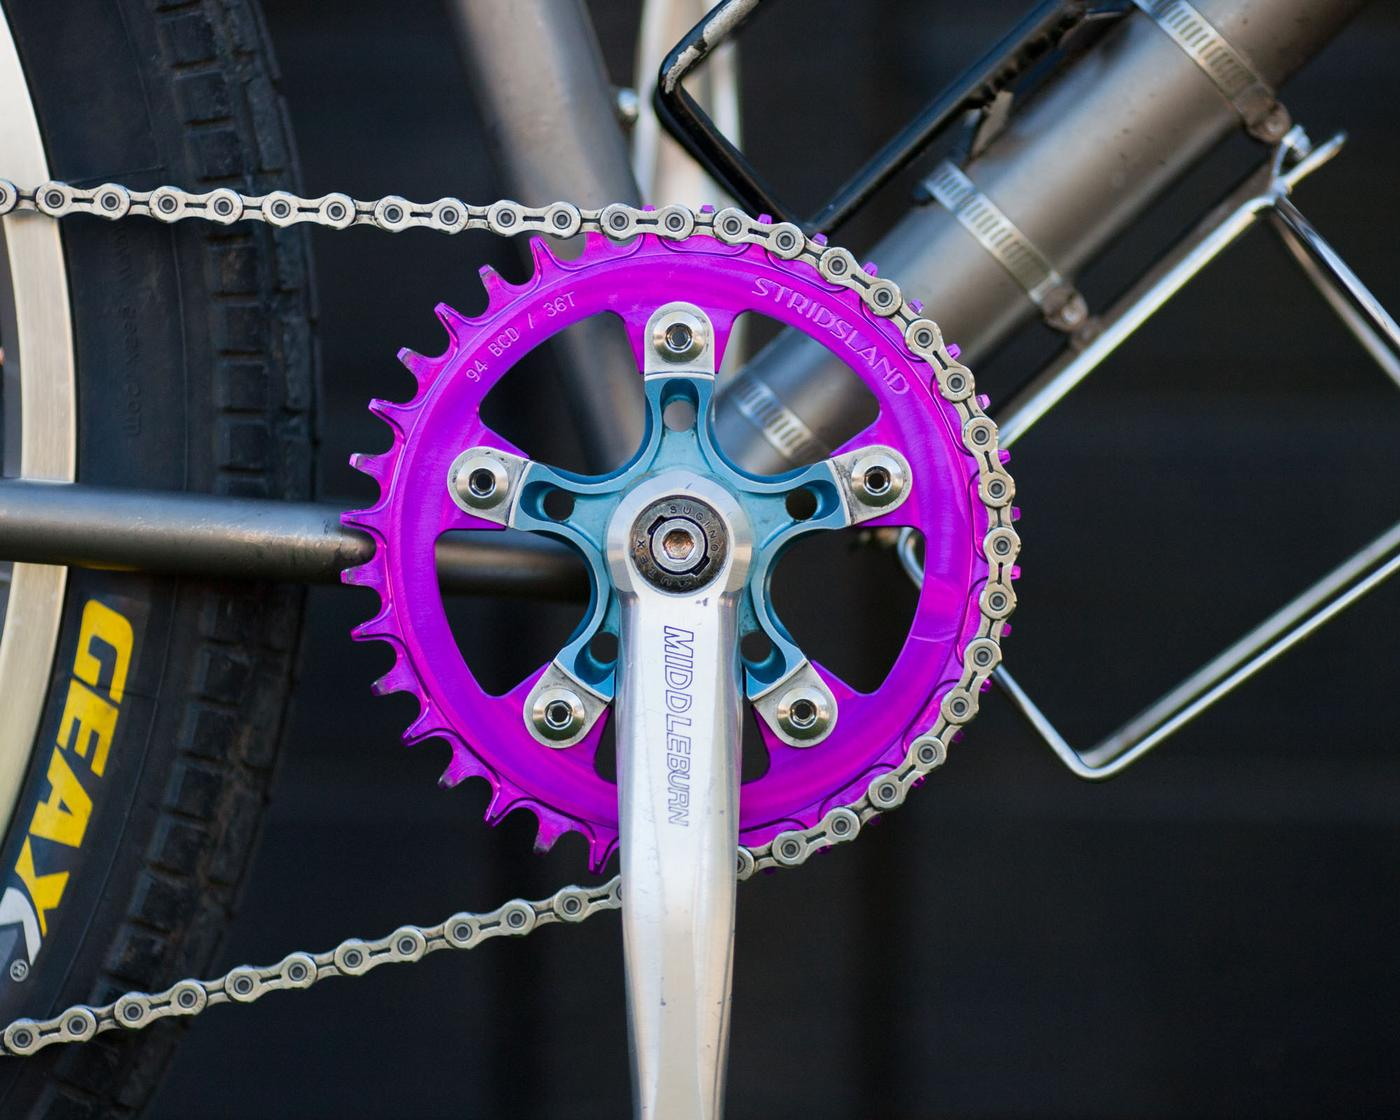 Stridsland: 94 bcd Narrow Wide Chainrings